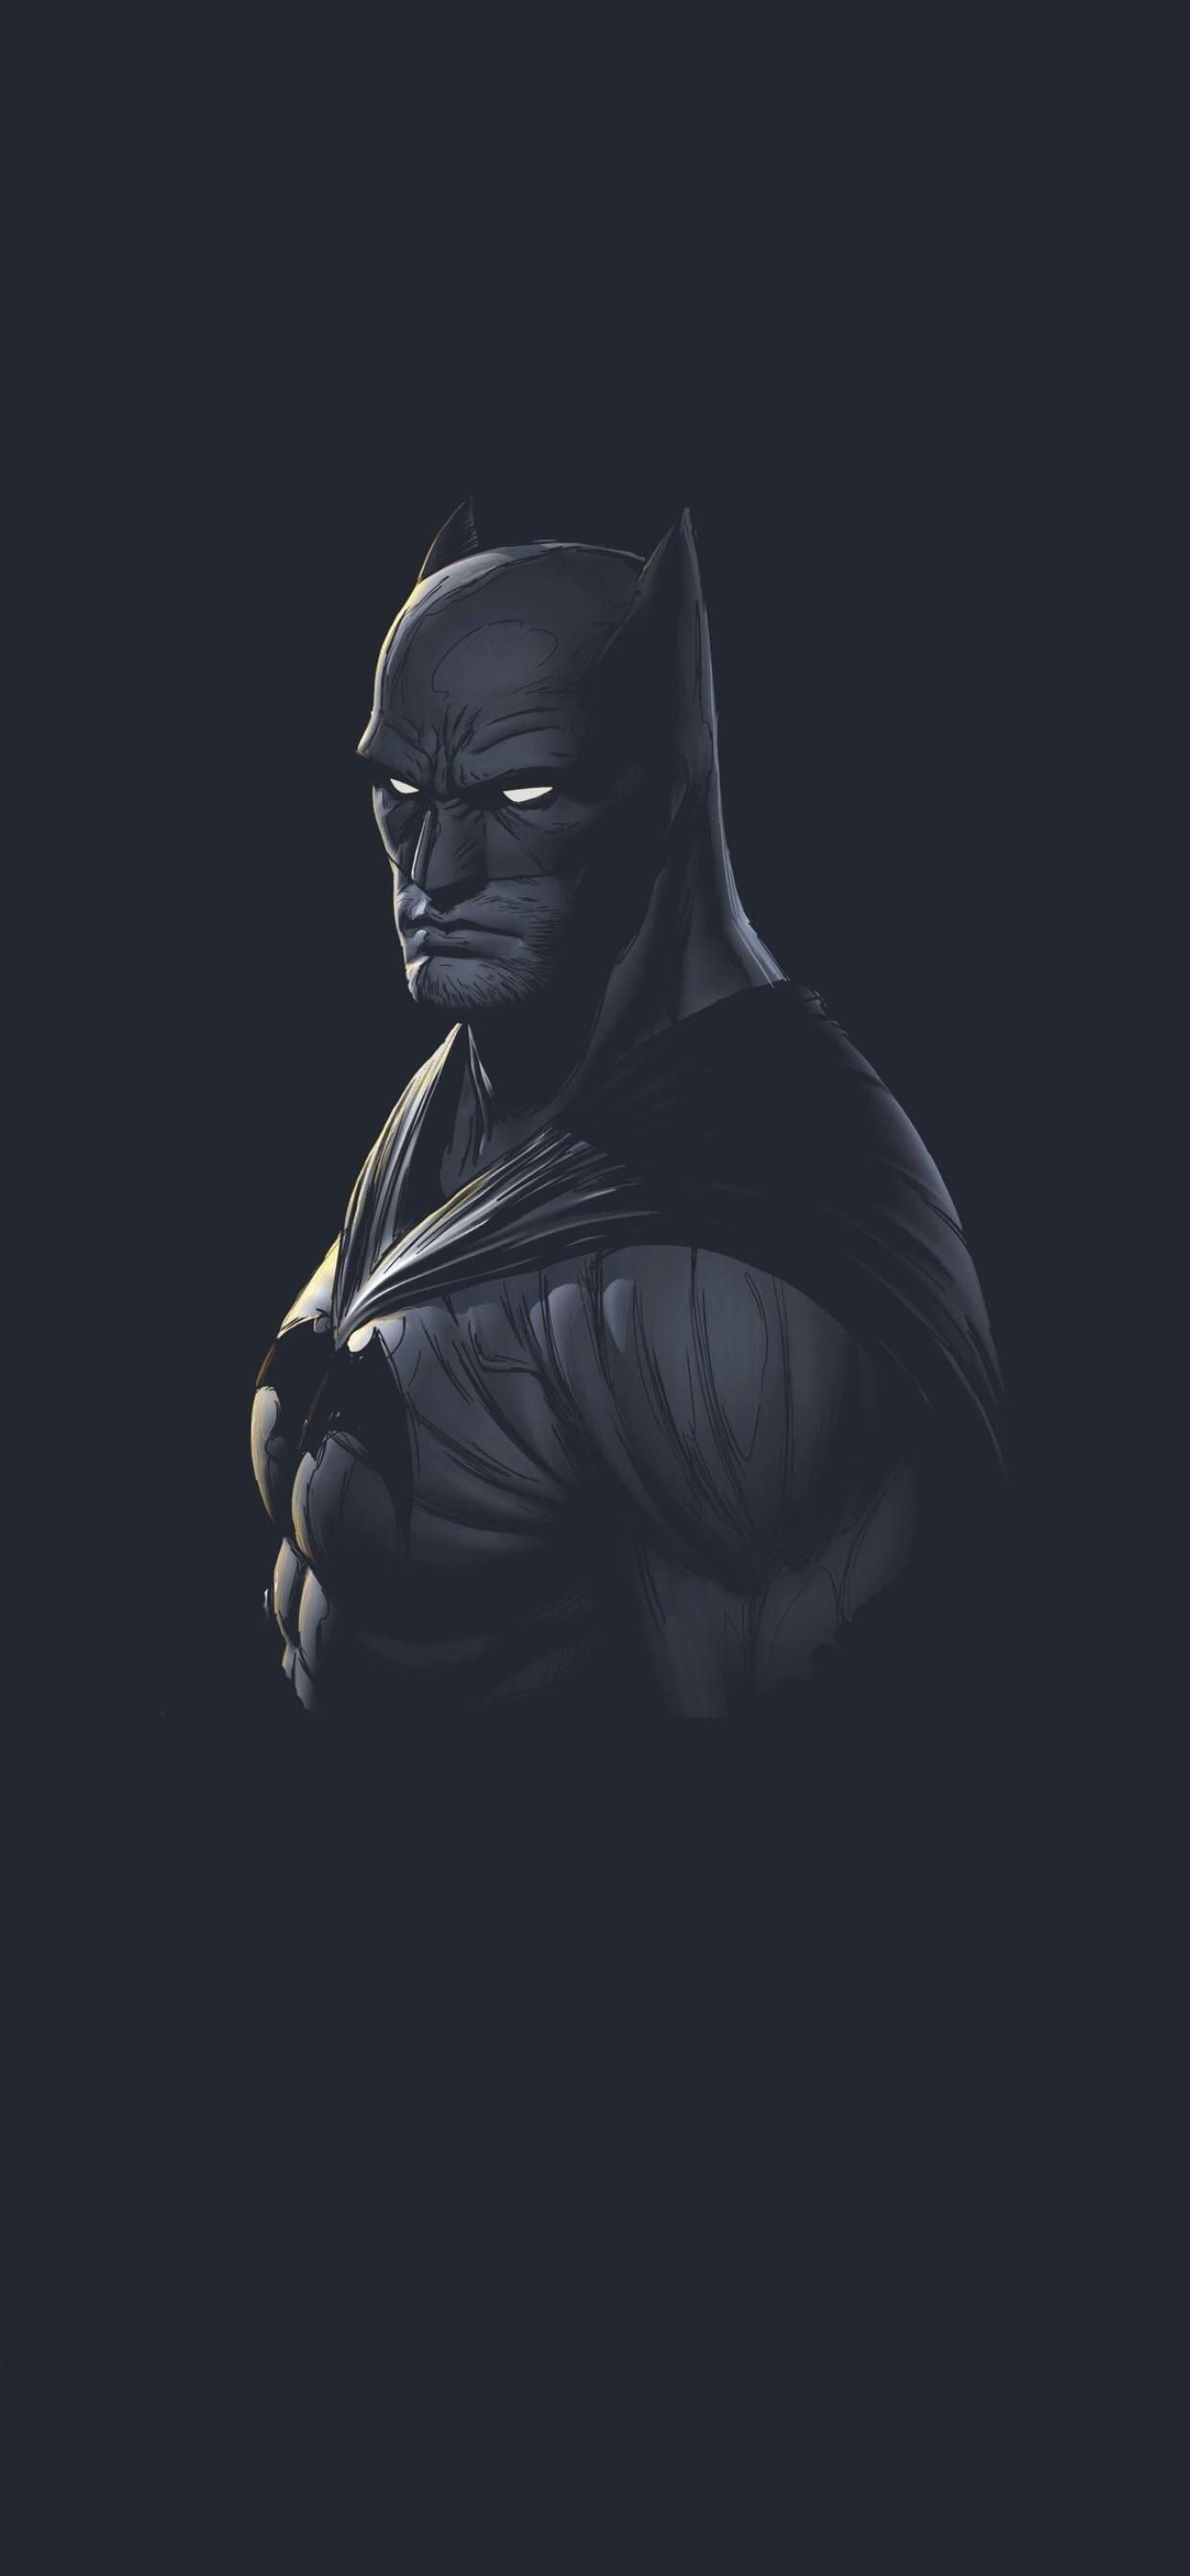 Batman Wallpaper 4k Iphone 11 In 2020 Batman Wallpaper Batman Wallpaper Iphone Batman